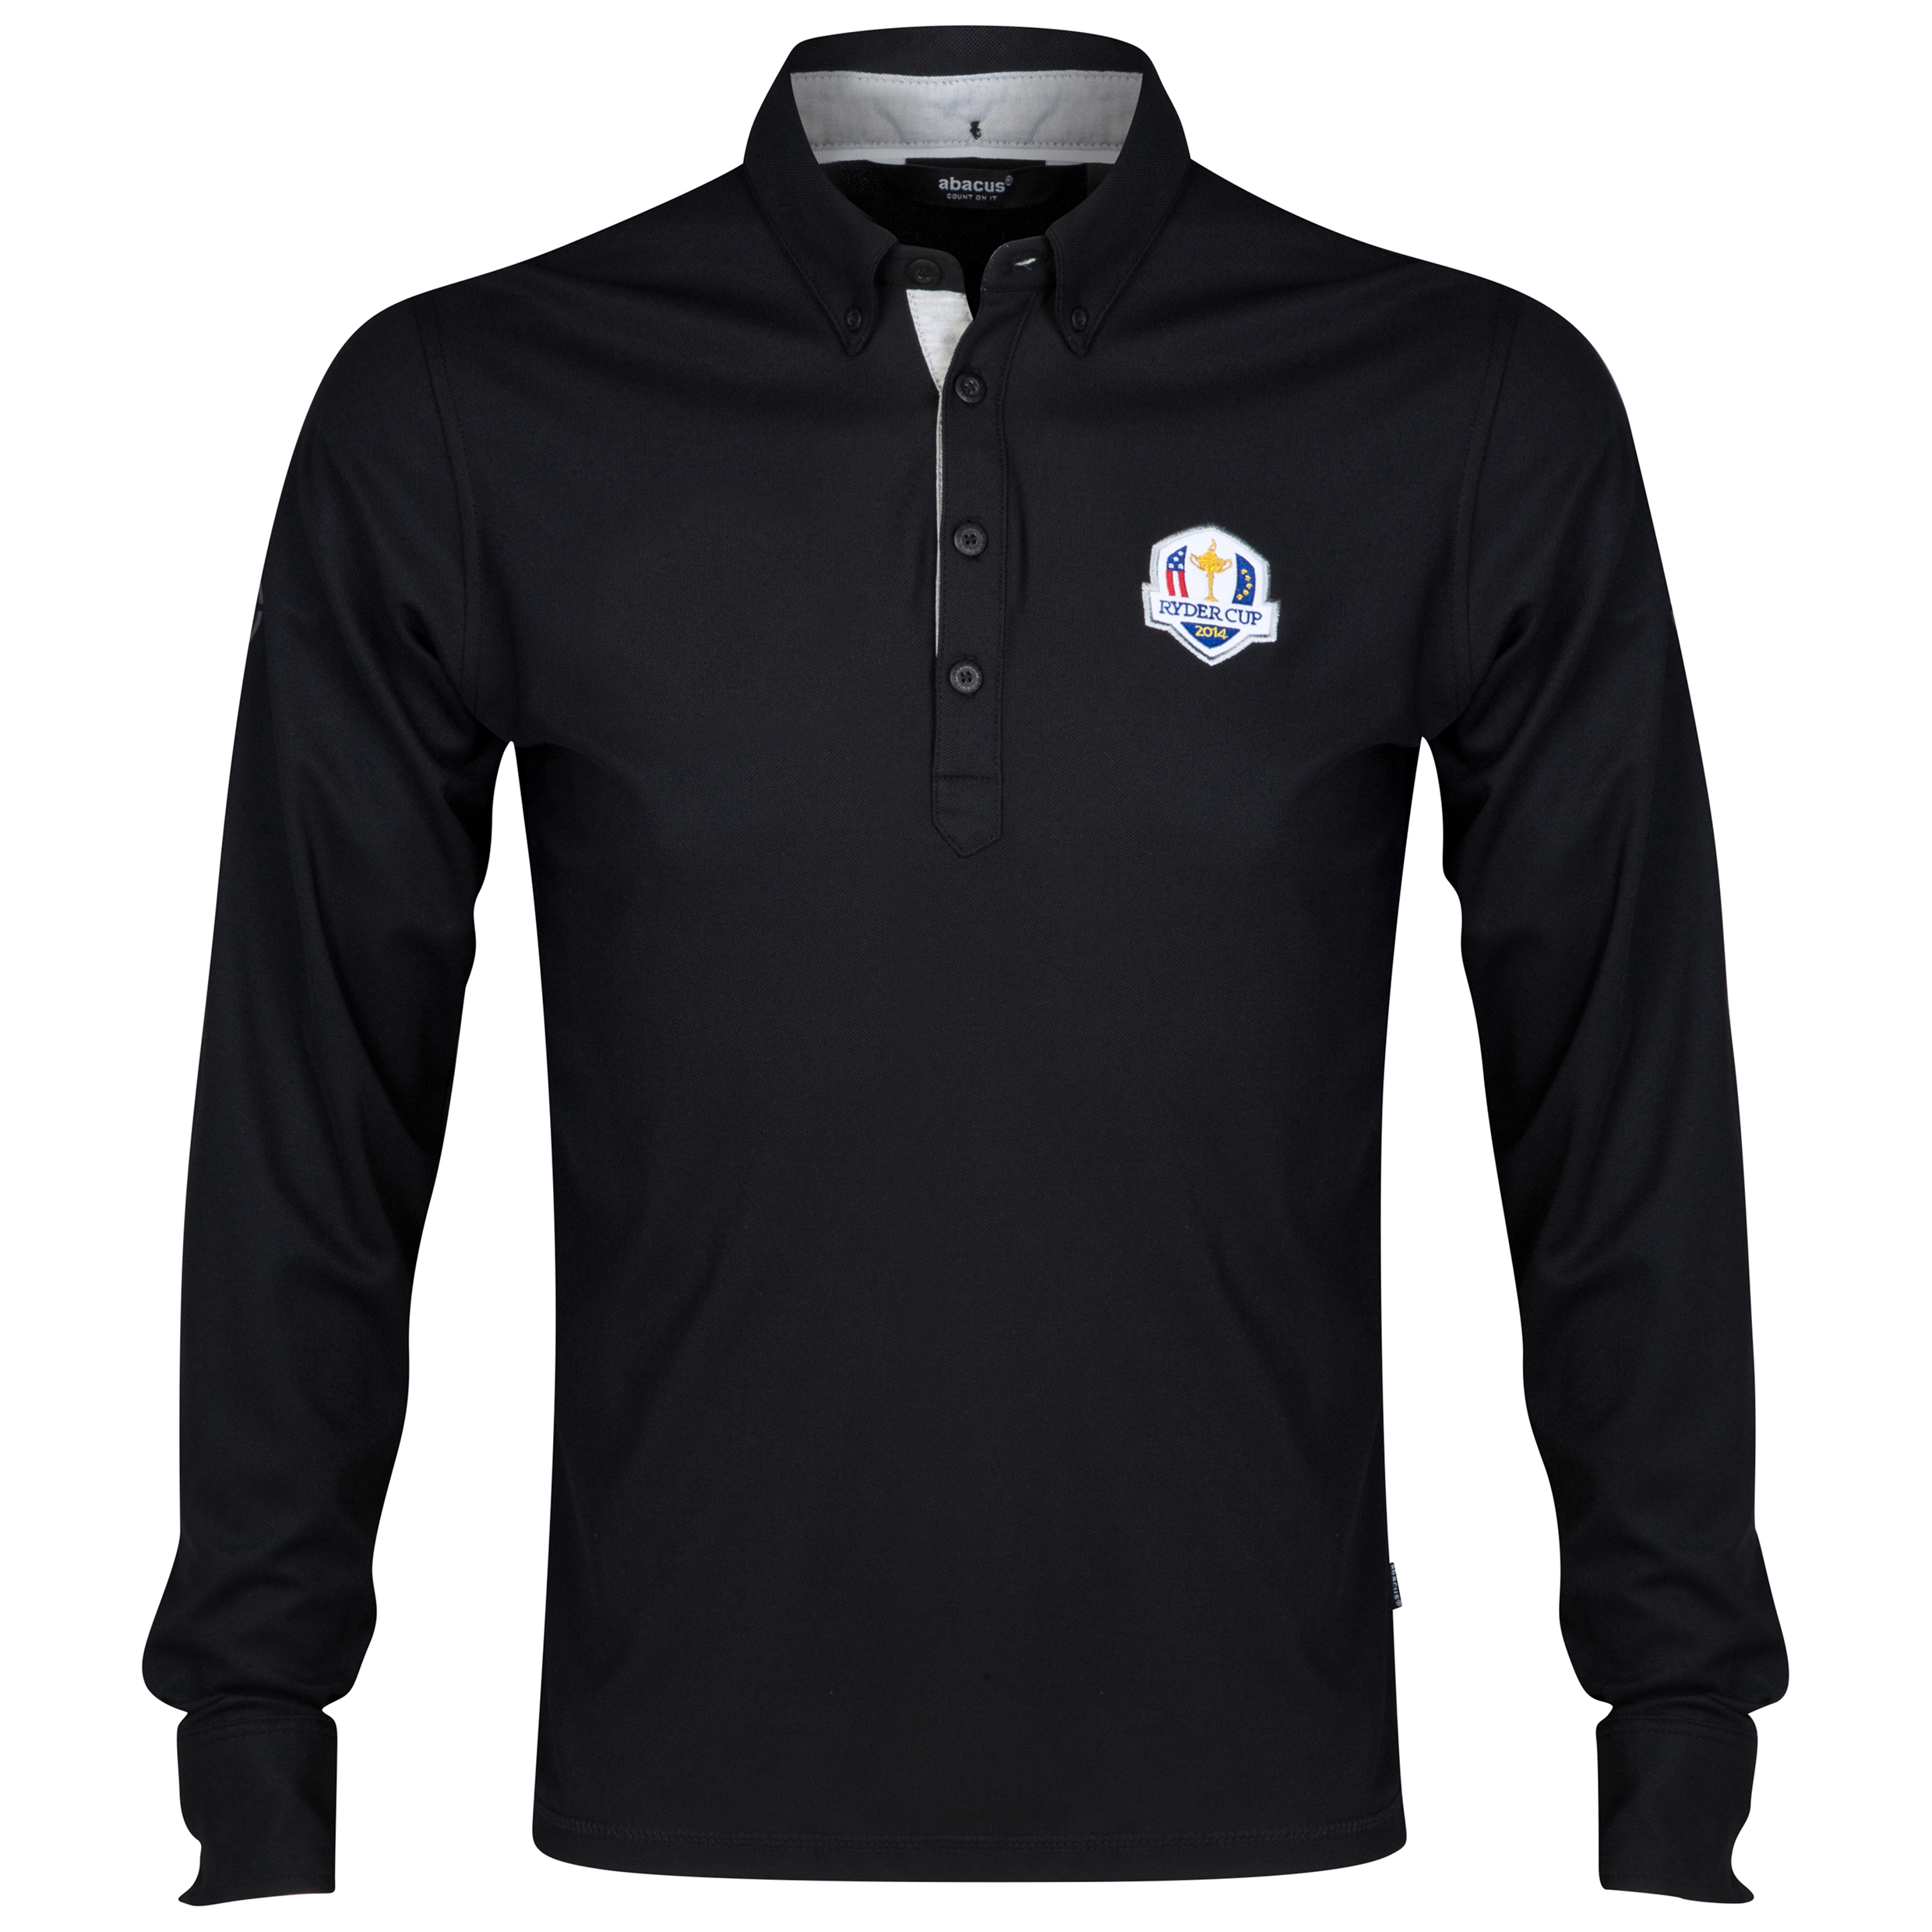 The 2014 Ryder Cup abacus Mens Forged Long Sleeve - Black